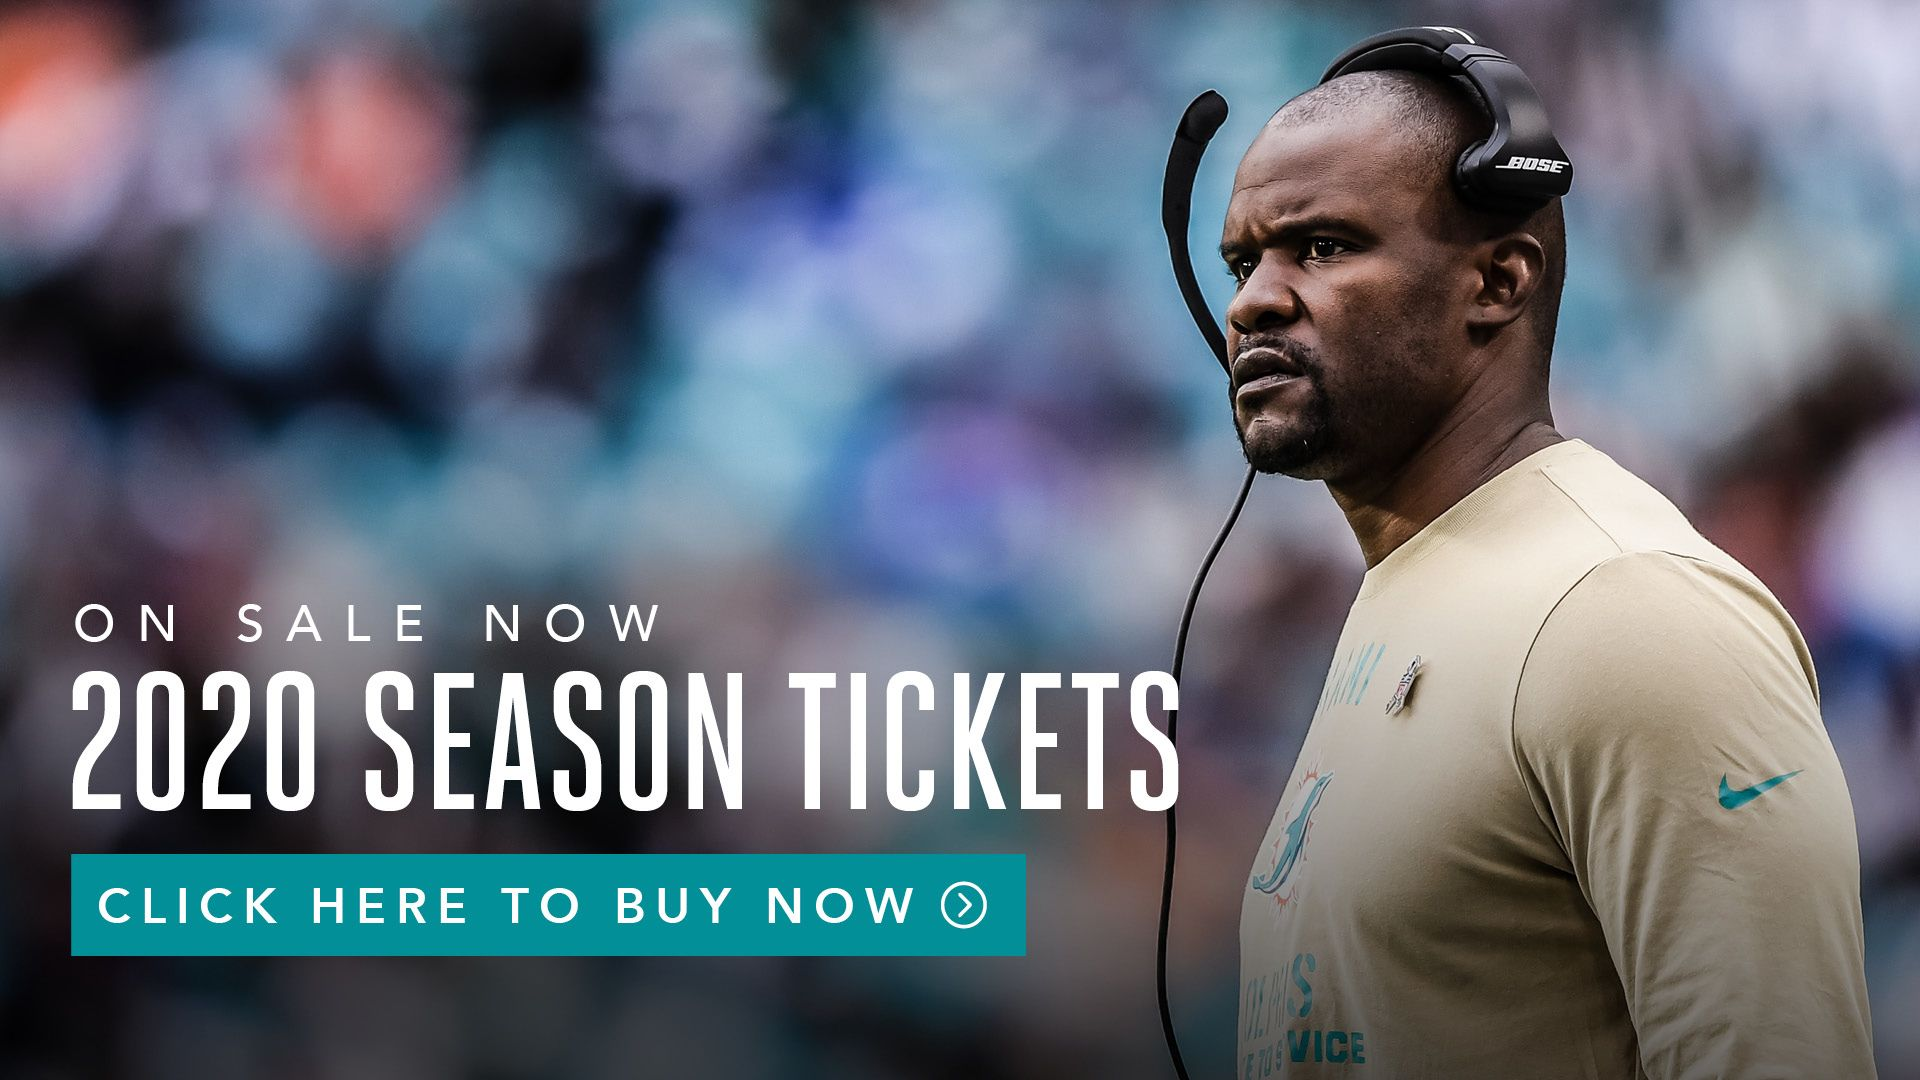 view available tickets for this season on the Ticketmaster's virtual venue experience